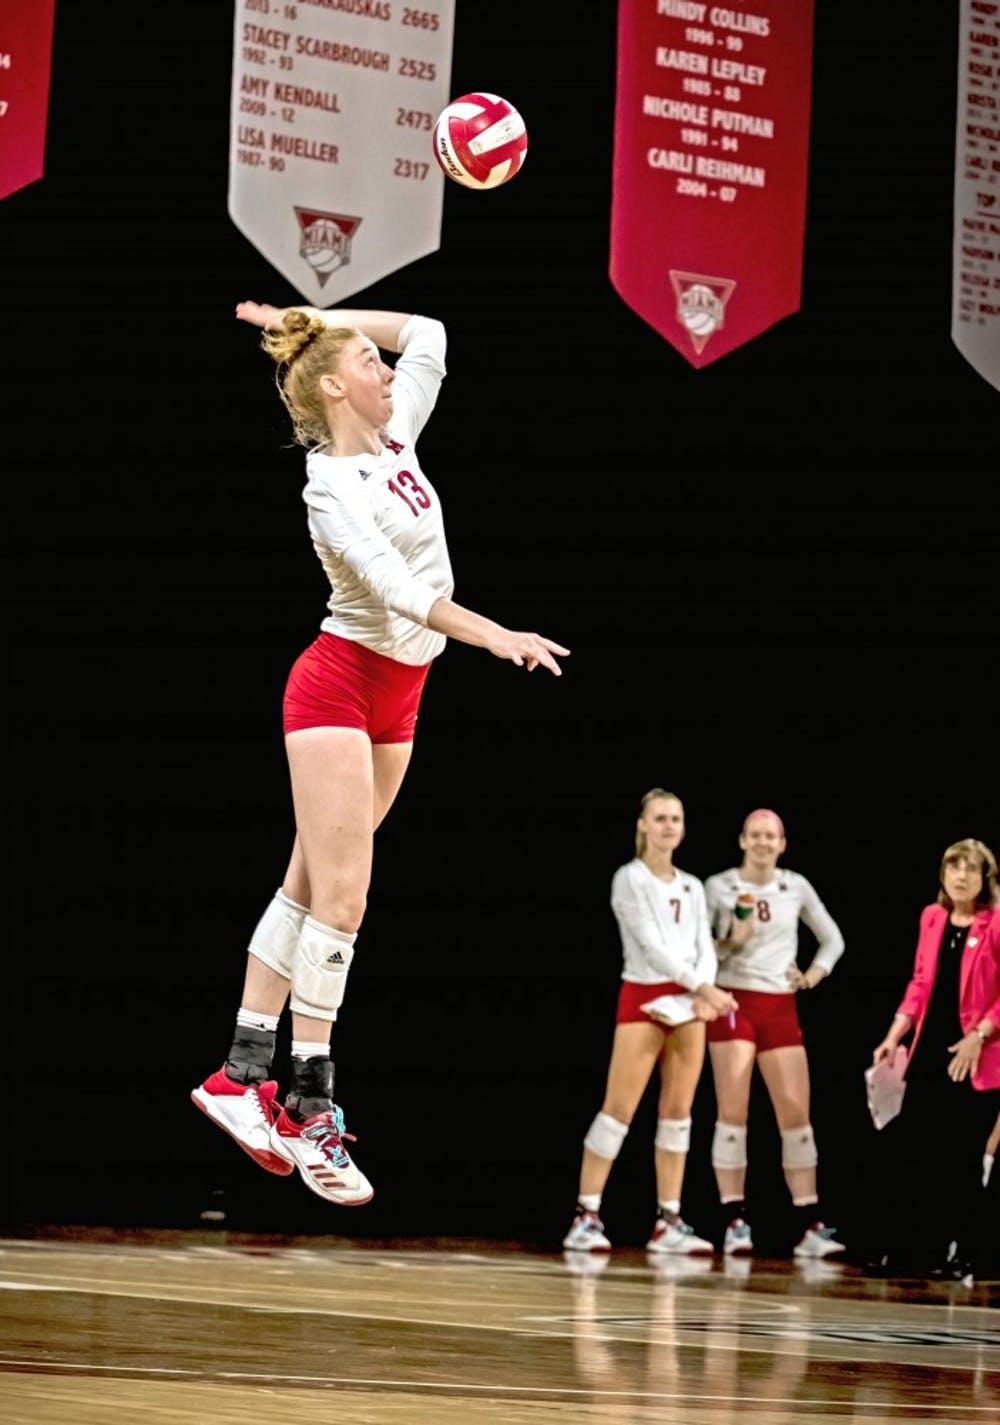 <p>Sophomore setter Louis Comerford serves at Millett Hall, where Miami is 6-3 this season.</p>